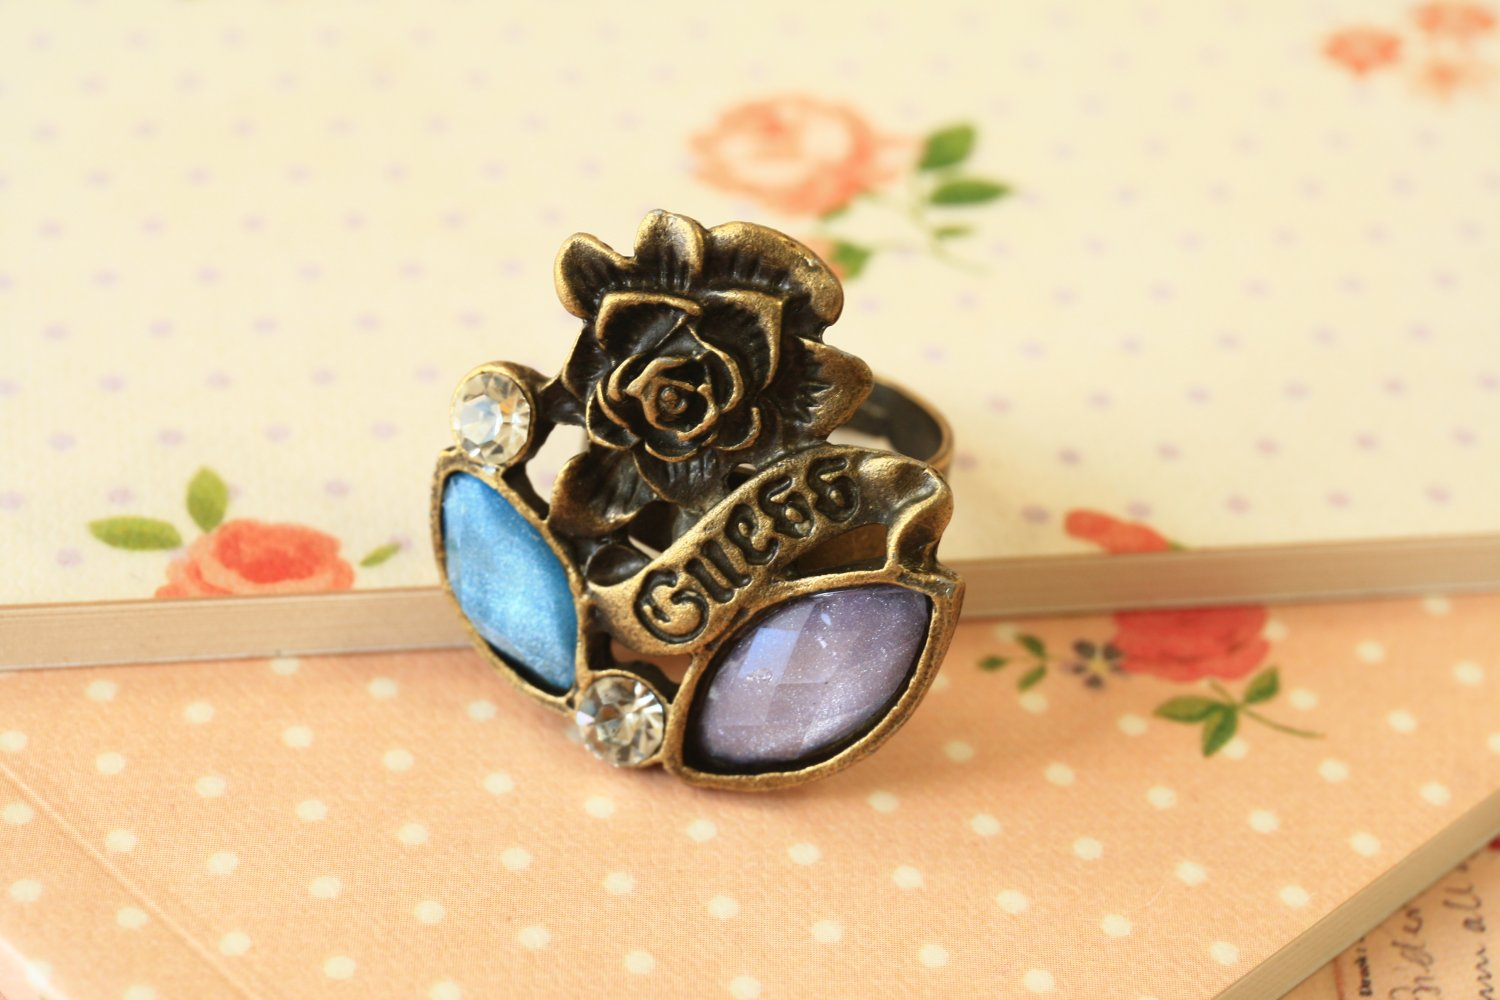 Guess Rose faux charm gems novelty ring